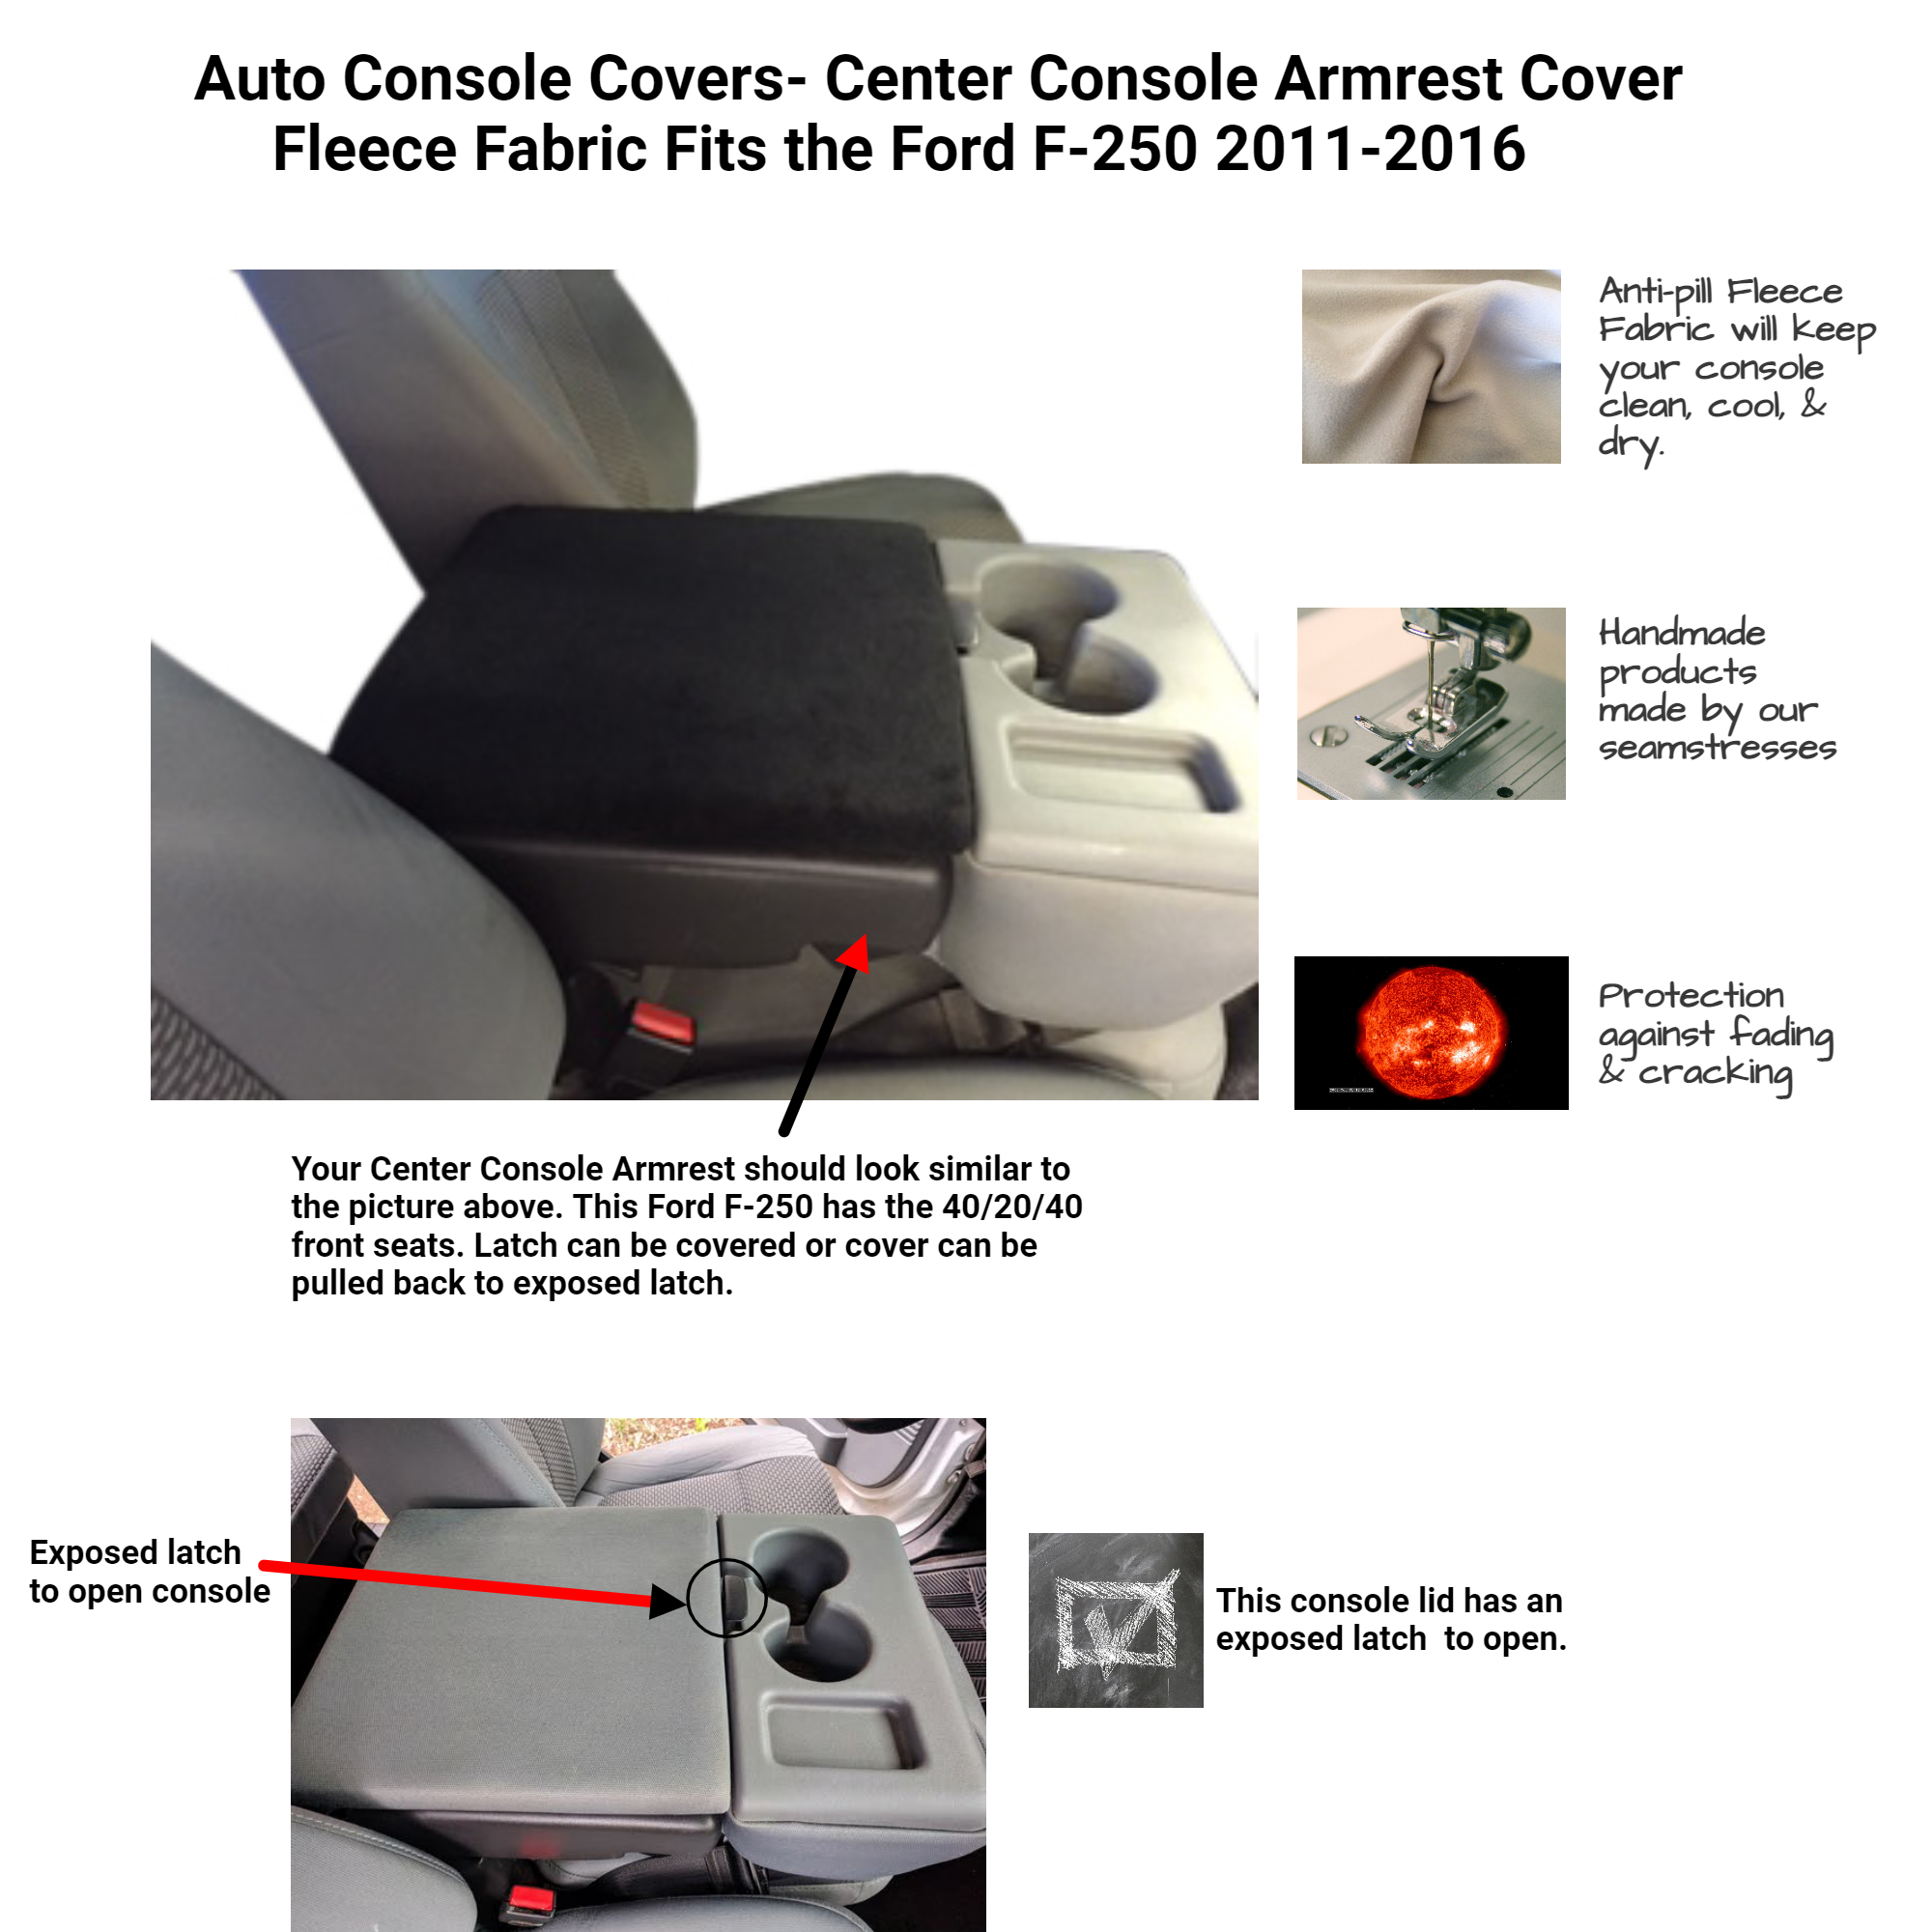 Buy Fleece Center Console Armrest Cover fits the Ford F-250 2011-2016 Fold down middle seat with a console box